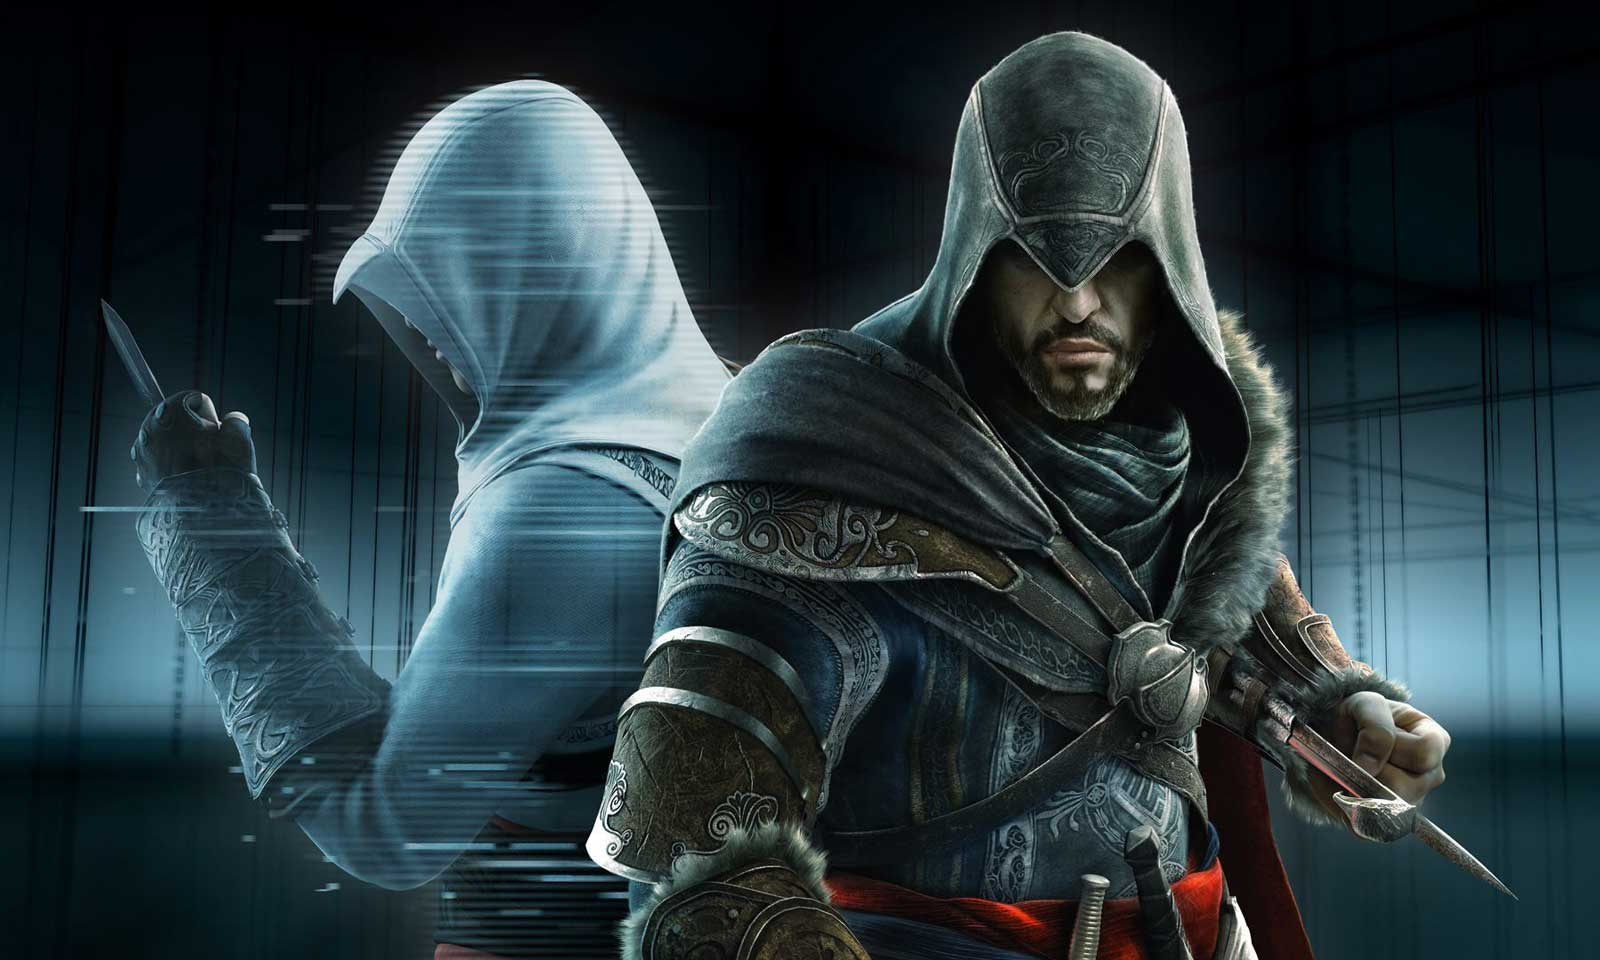 Assassin's-Creed-Revelations-Animus-Parte-IV